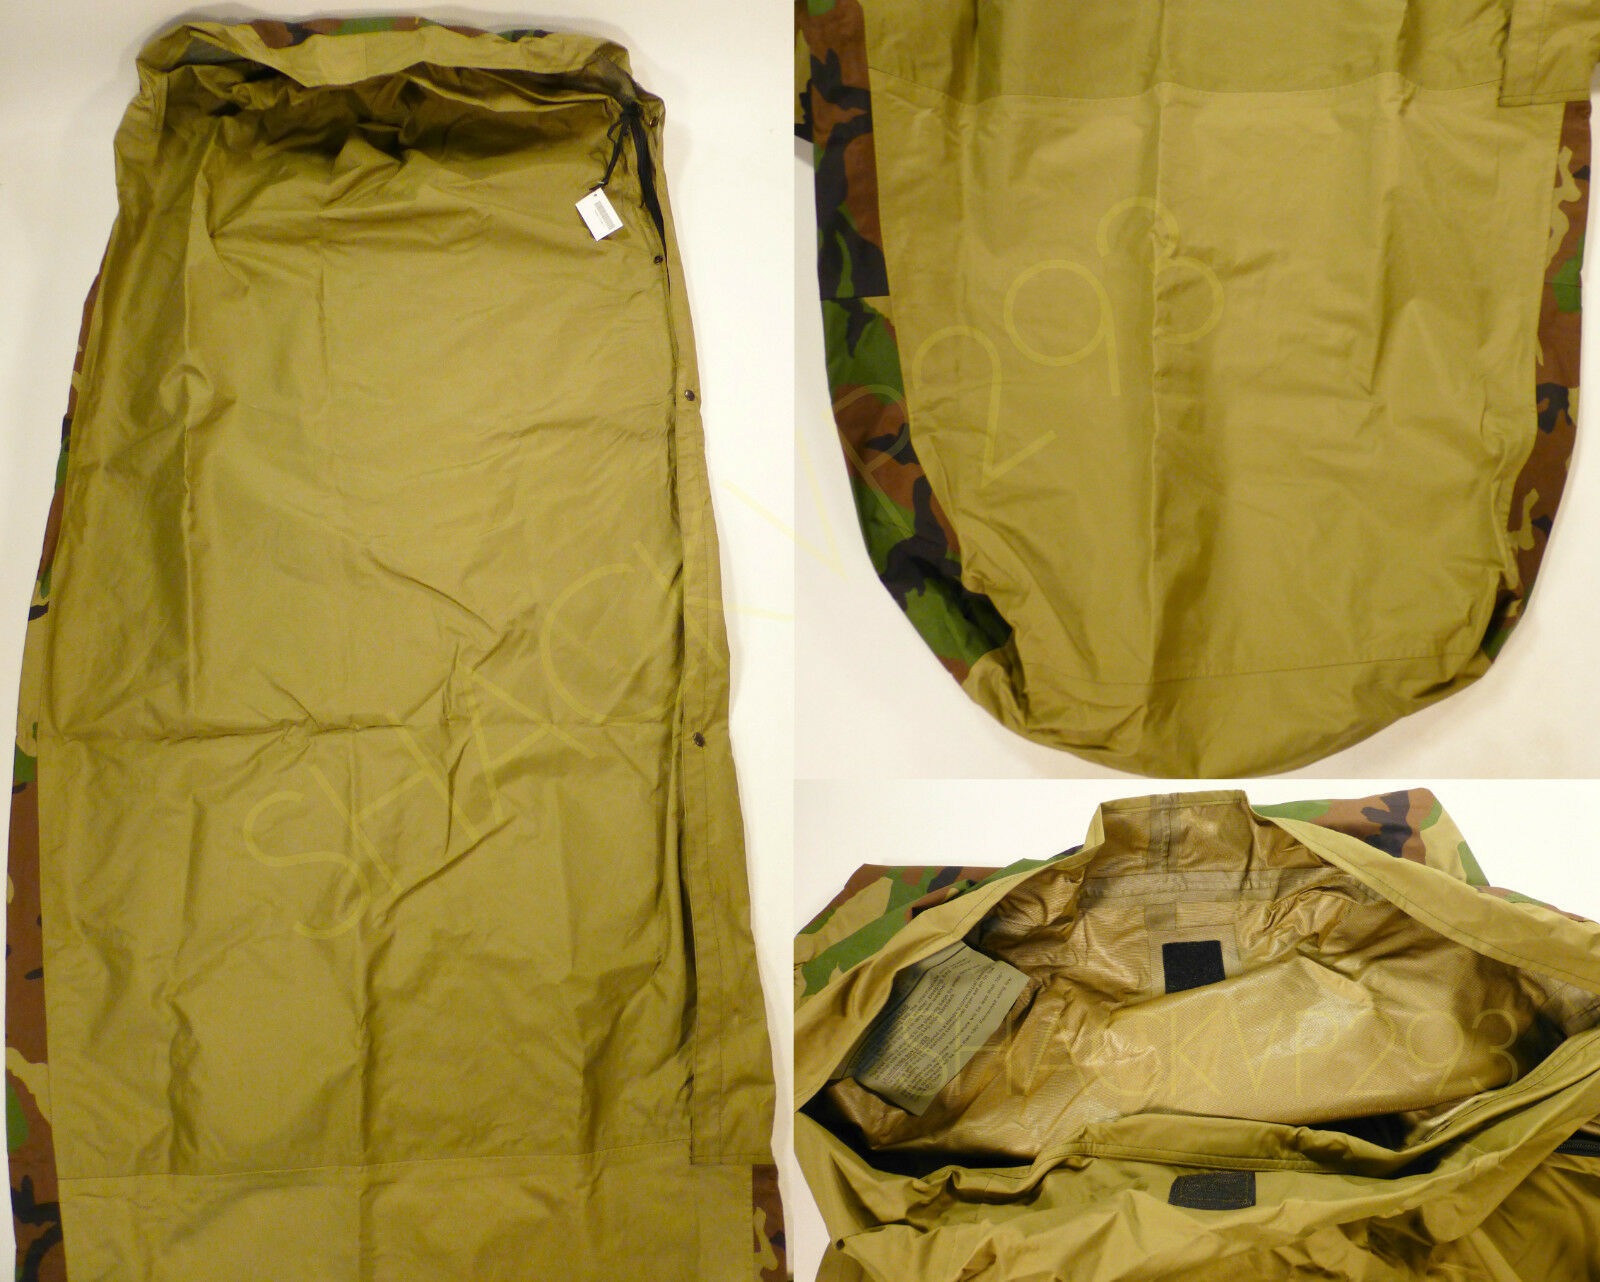 new military issue us sleeping bag bivy cover for mss woodland new military issue us sleeping bag bivy cover for mss woodland camouflage usgi 11 11 of 12